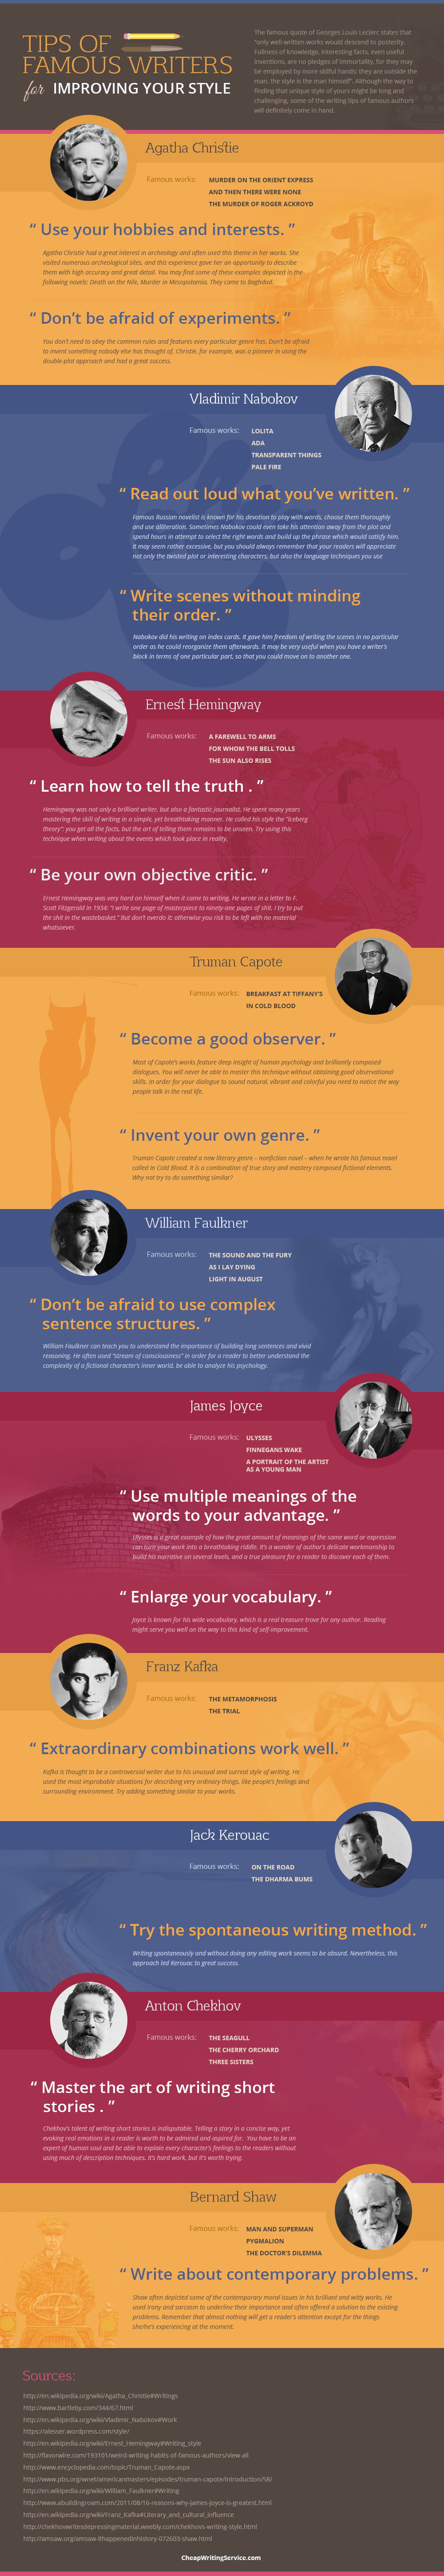 Tips of Famous Writers for Improving Your Style